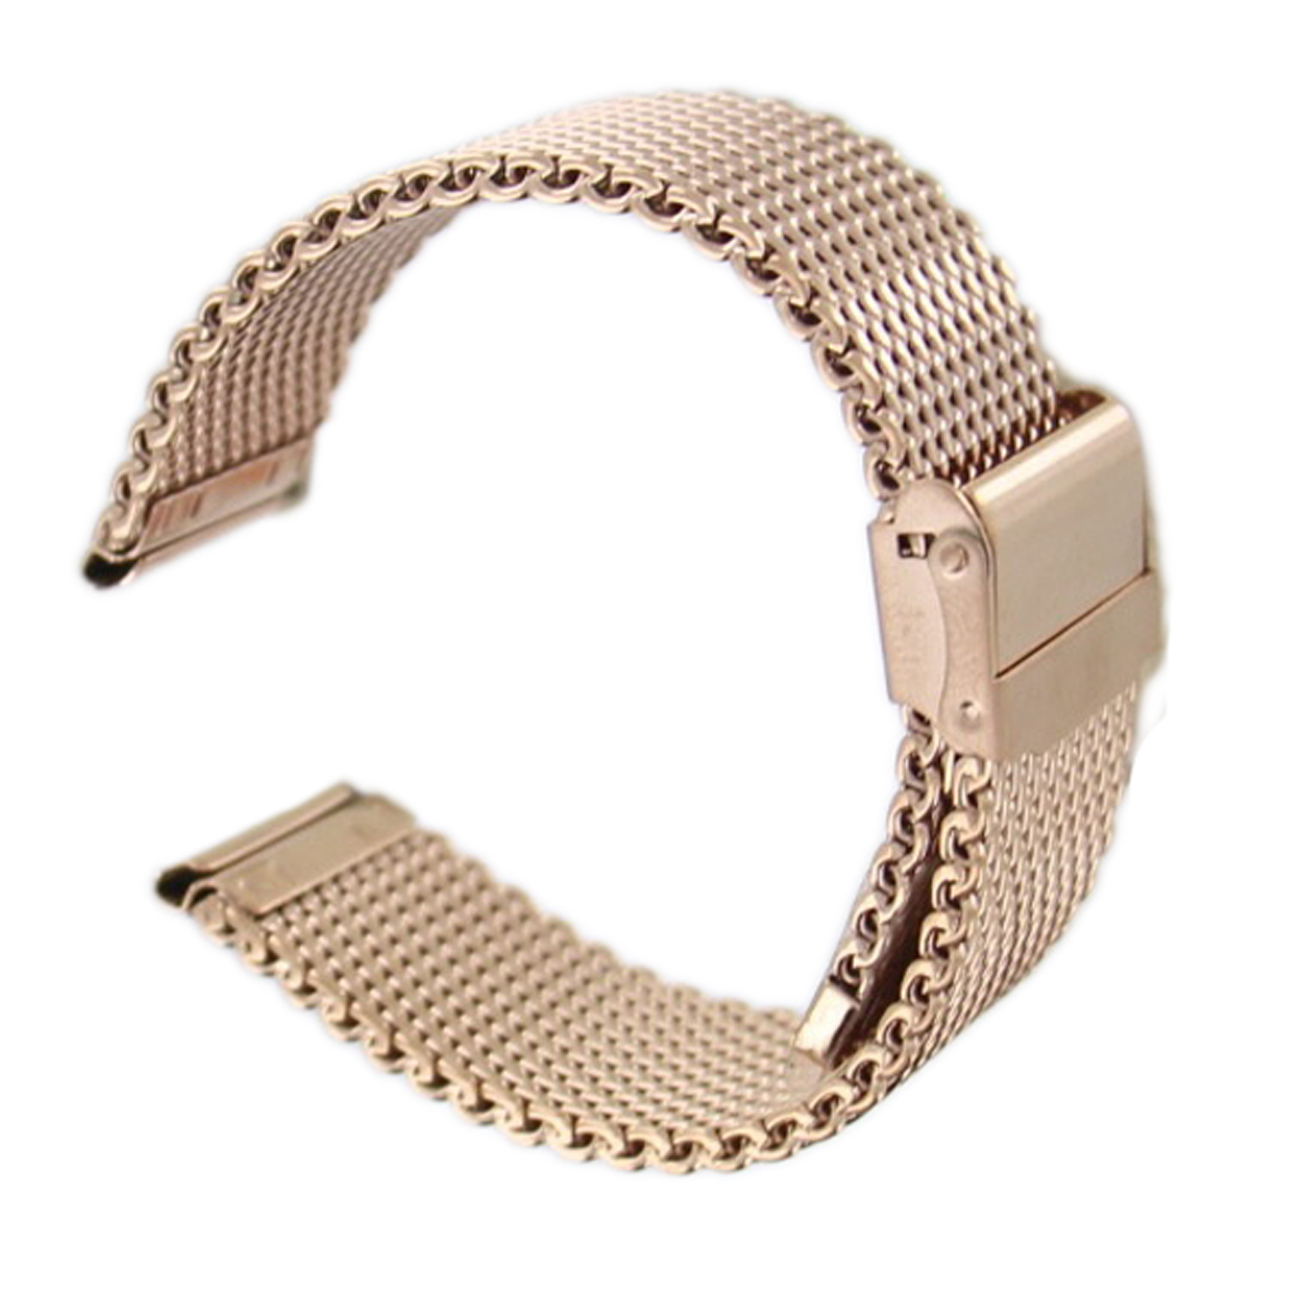 Hadley Roma MB3844R 22mm Rose Gold Tone Mens Thick Mesh Bracelet Bracelet Watch